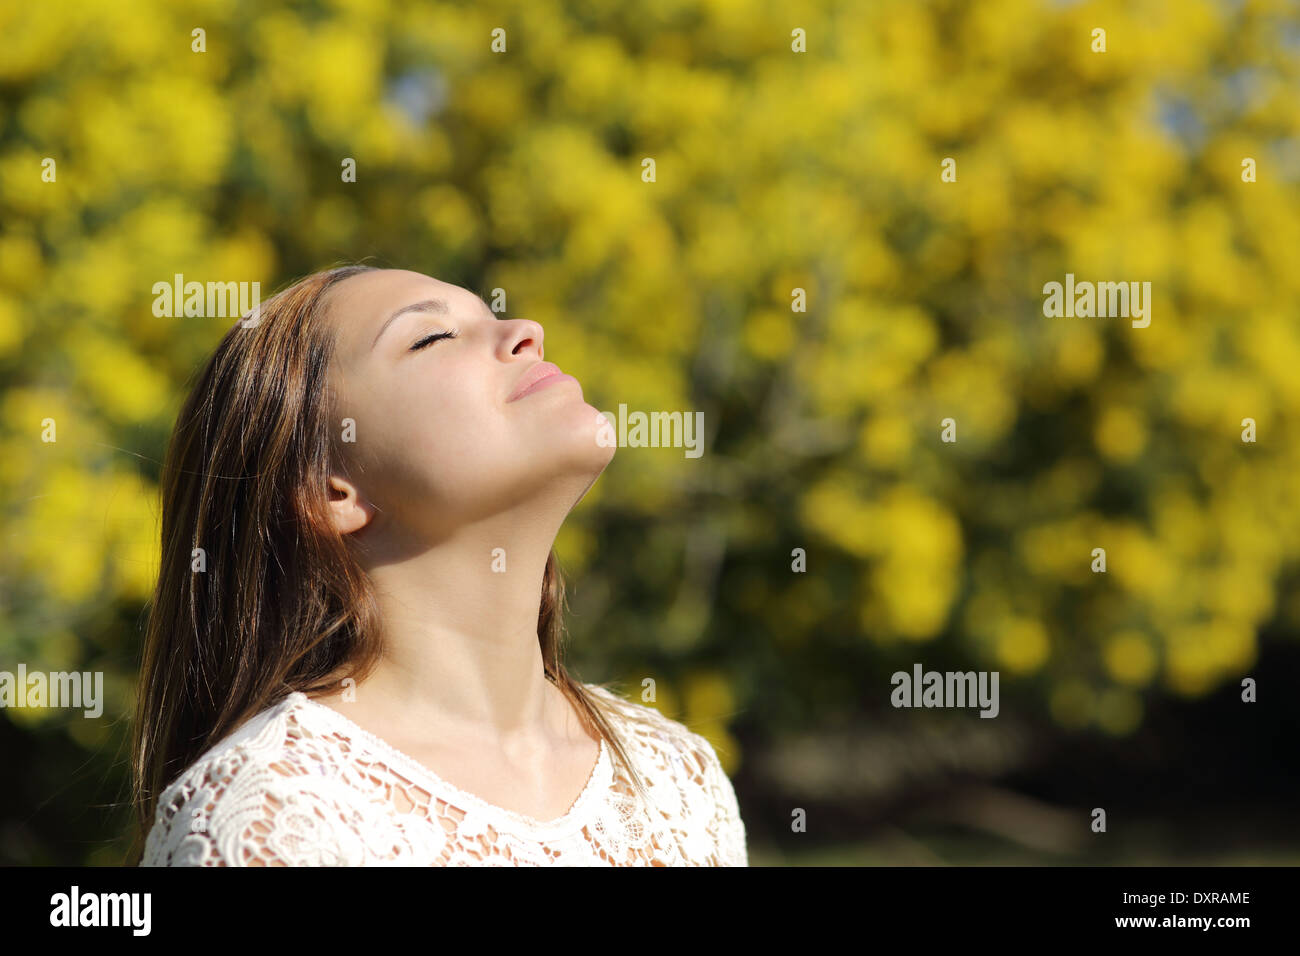 Woman breathing deep in spring or summer with a yellow background - Stock Image